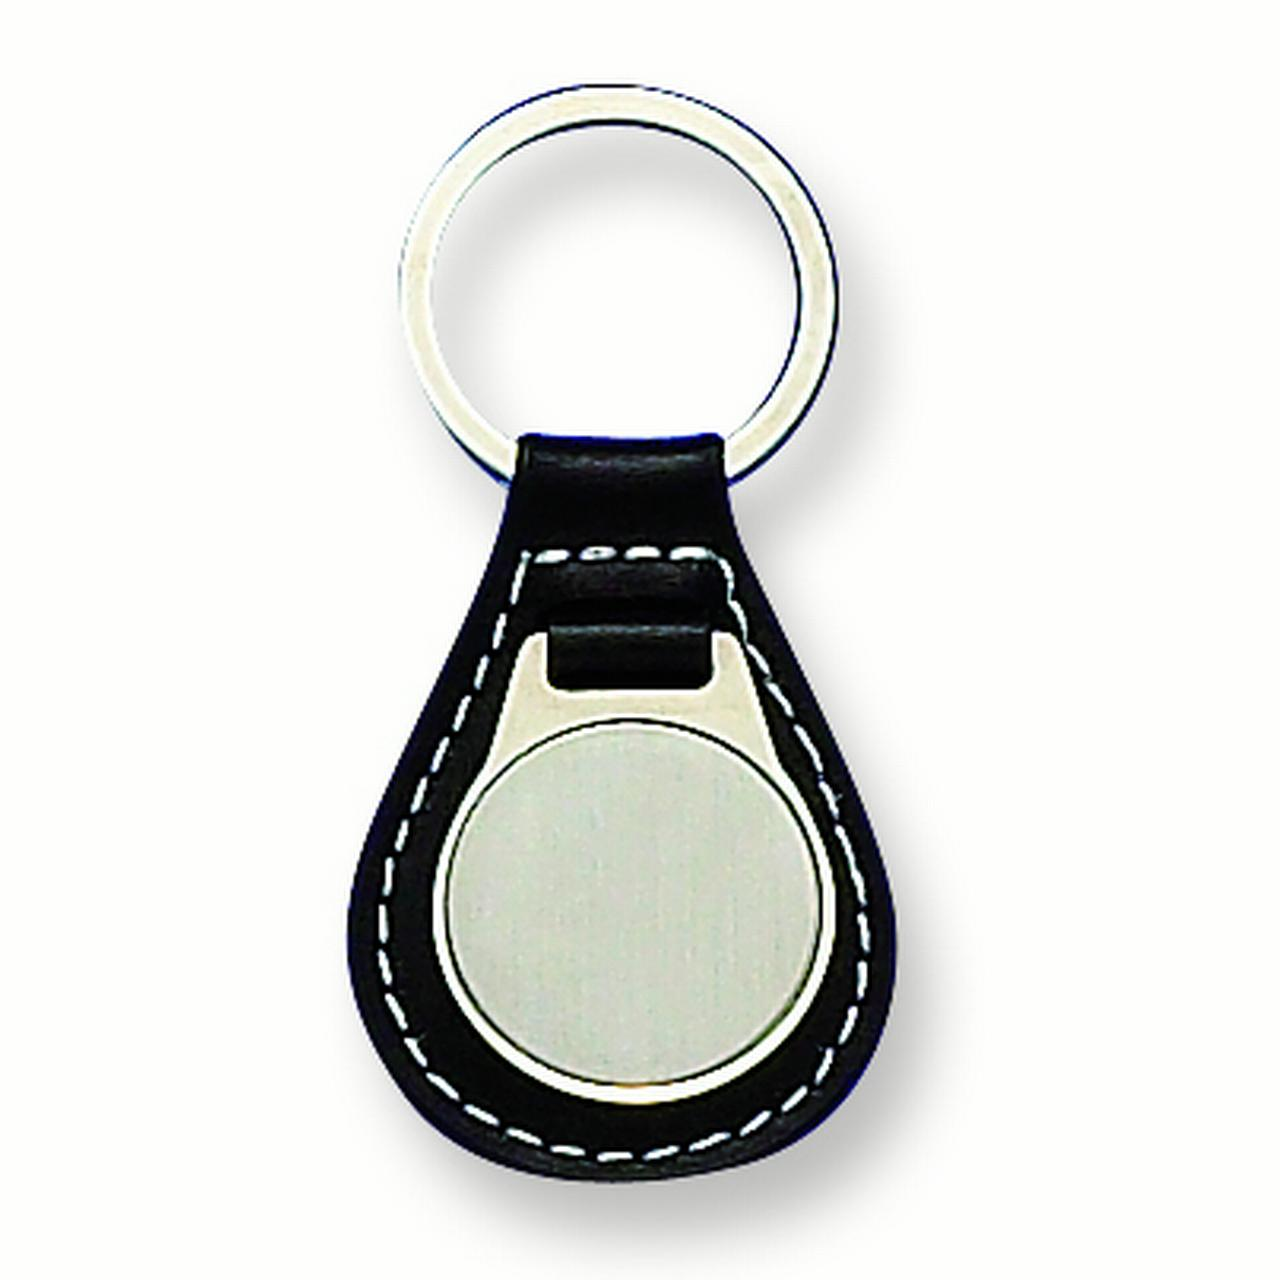 Black Key Band Ring Size Money Clip Wallet Fashion Jewelry Gift For Dad Mens For Him - image 4 de 4